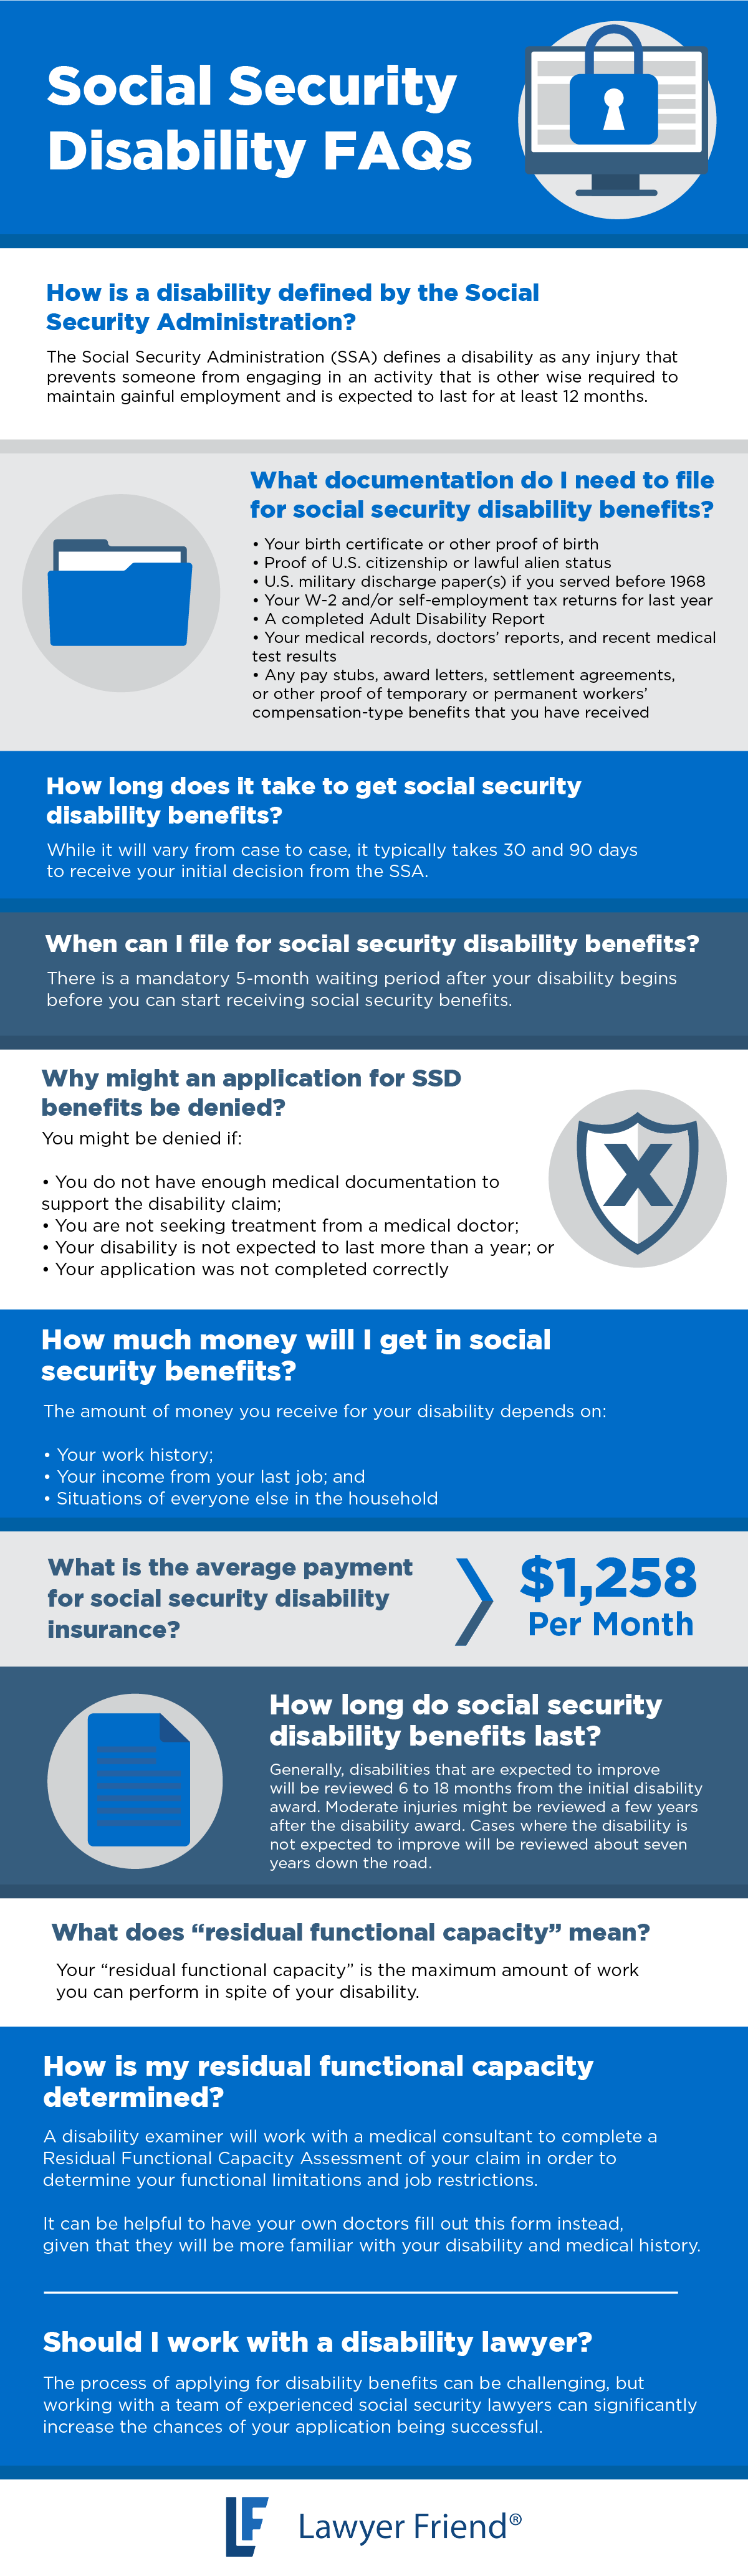 social security disability infographic